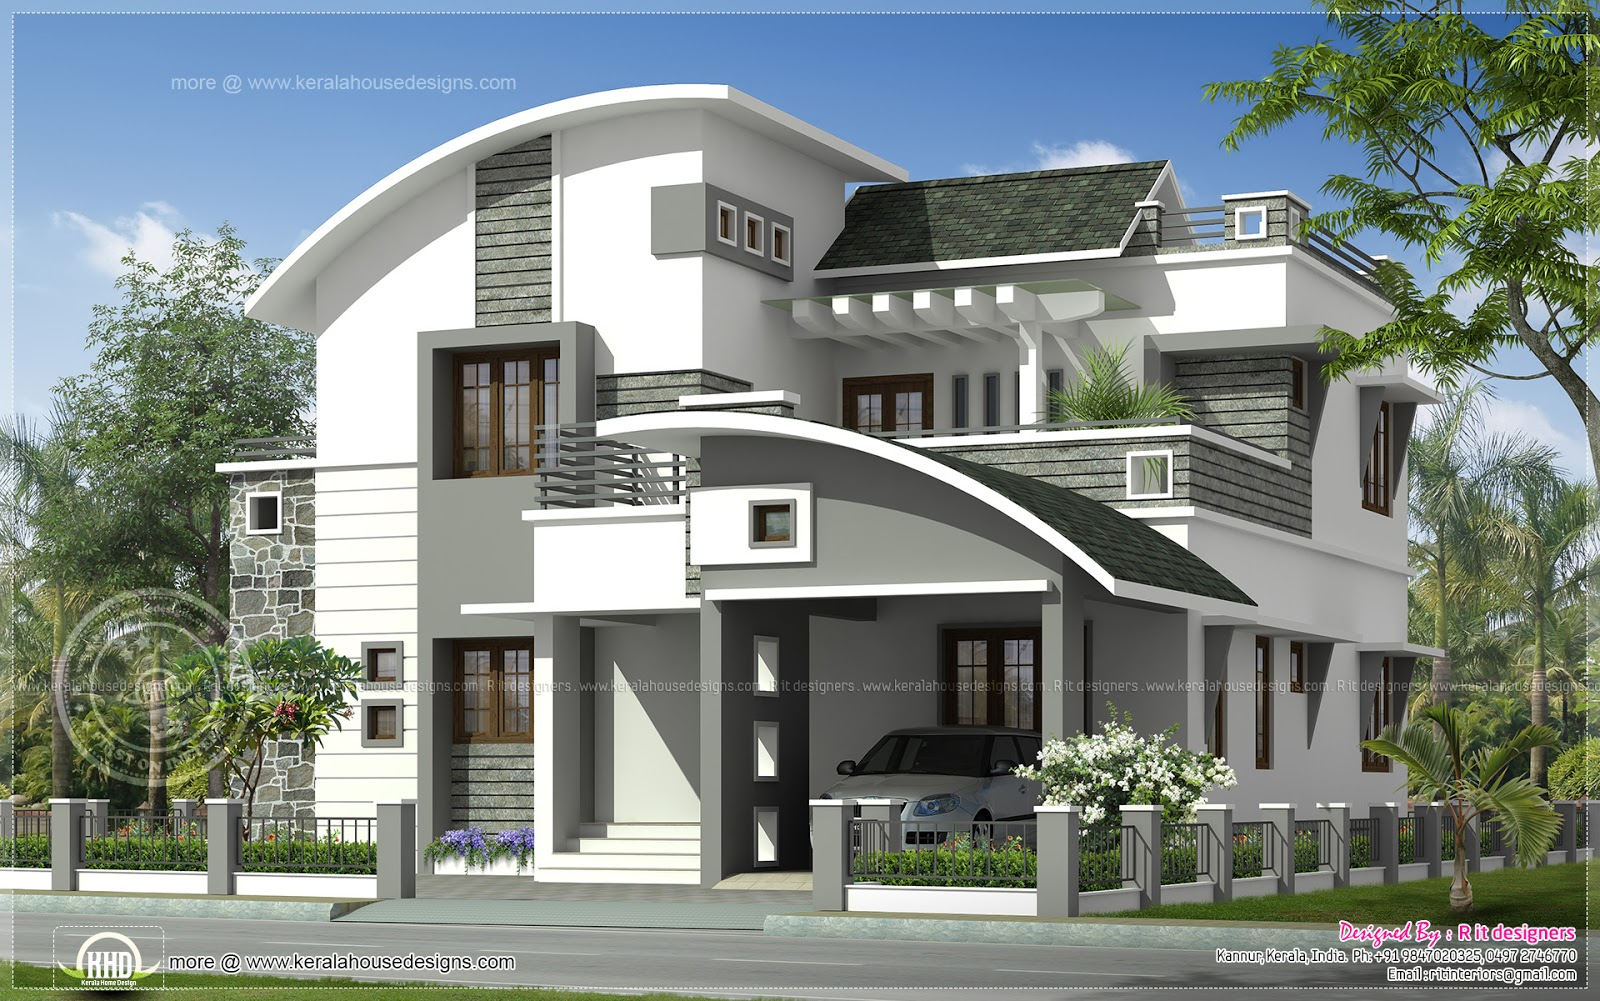 2200 sq ft modern villa exterior kerala home design and for Villa design plan india